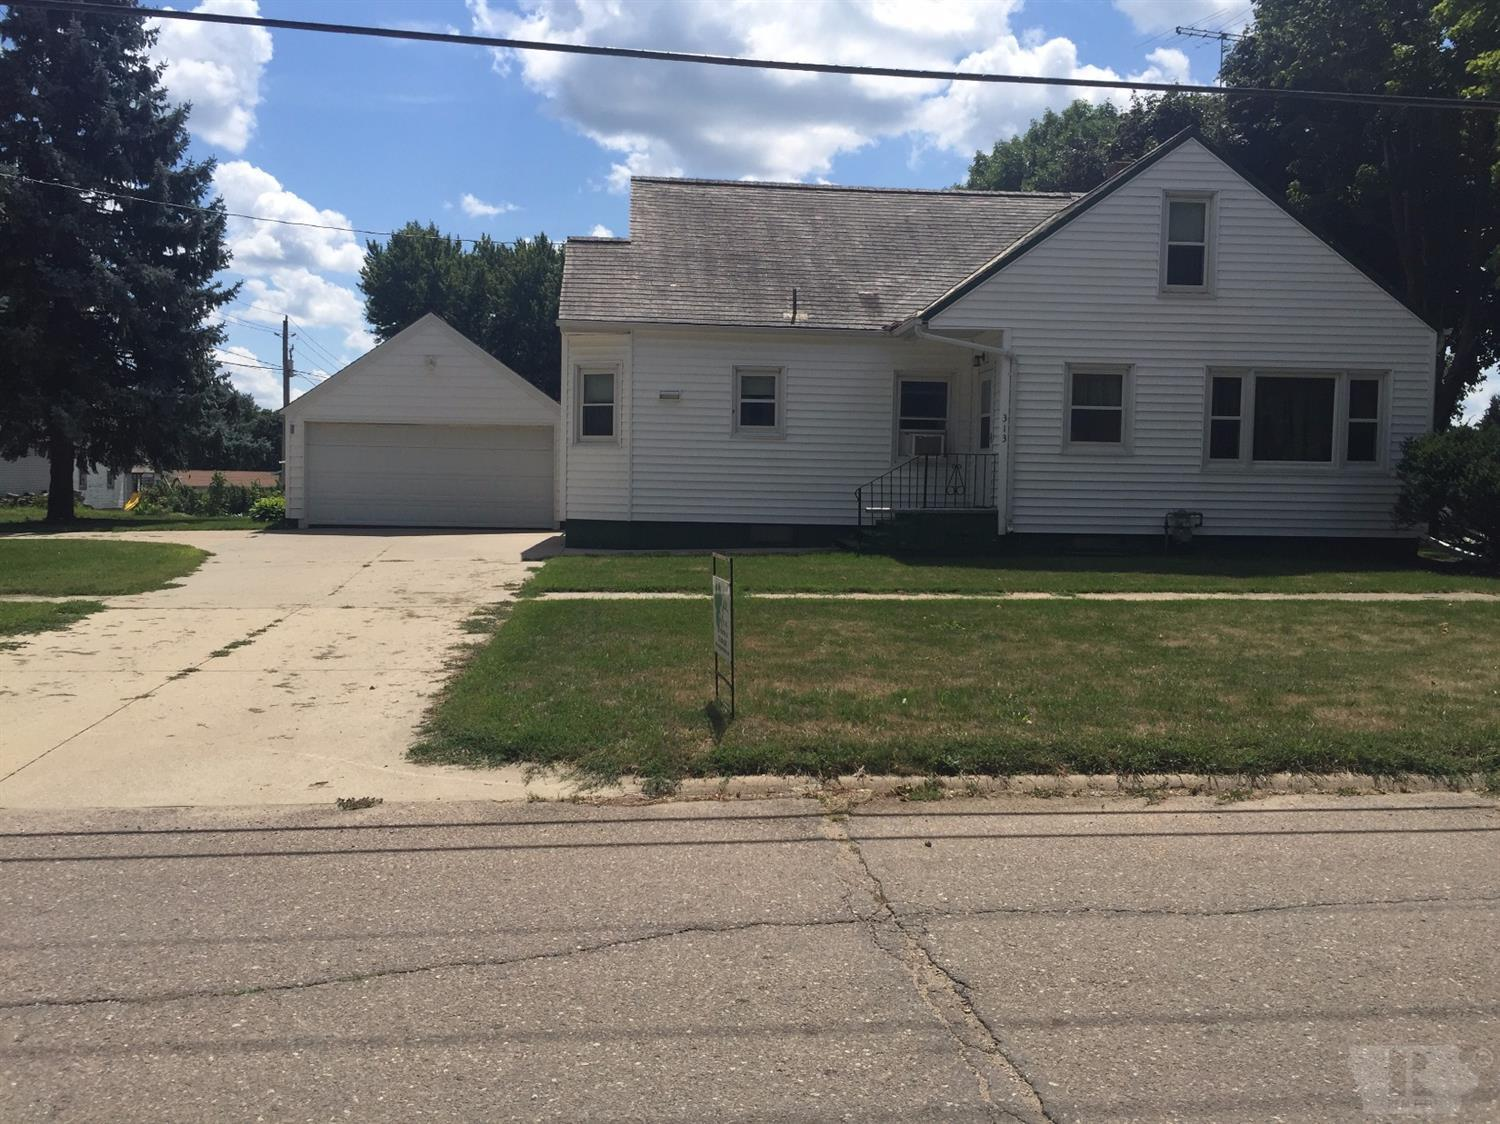 Photo of 313 West Second  Holstein  IA